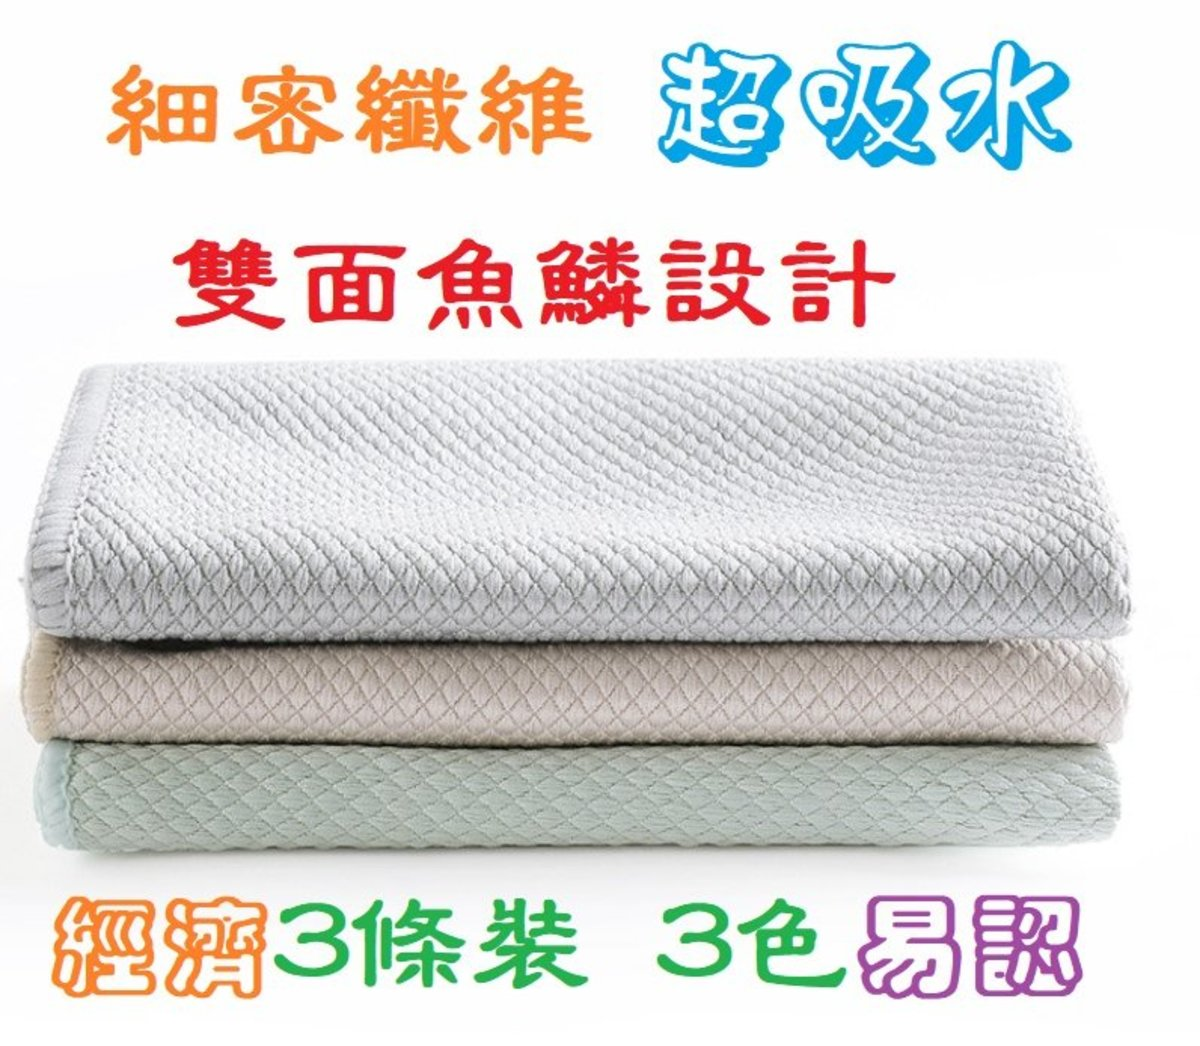 Plush microfiber strong absorbent rag (3 pieces) [Normal thickness]_A5